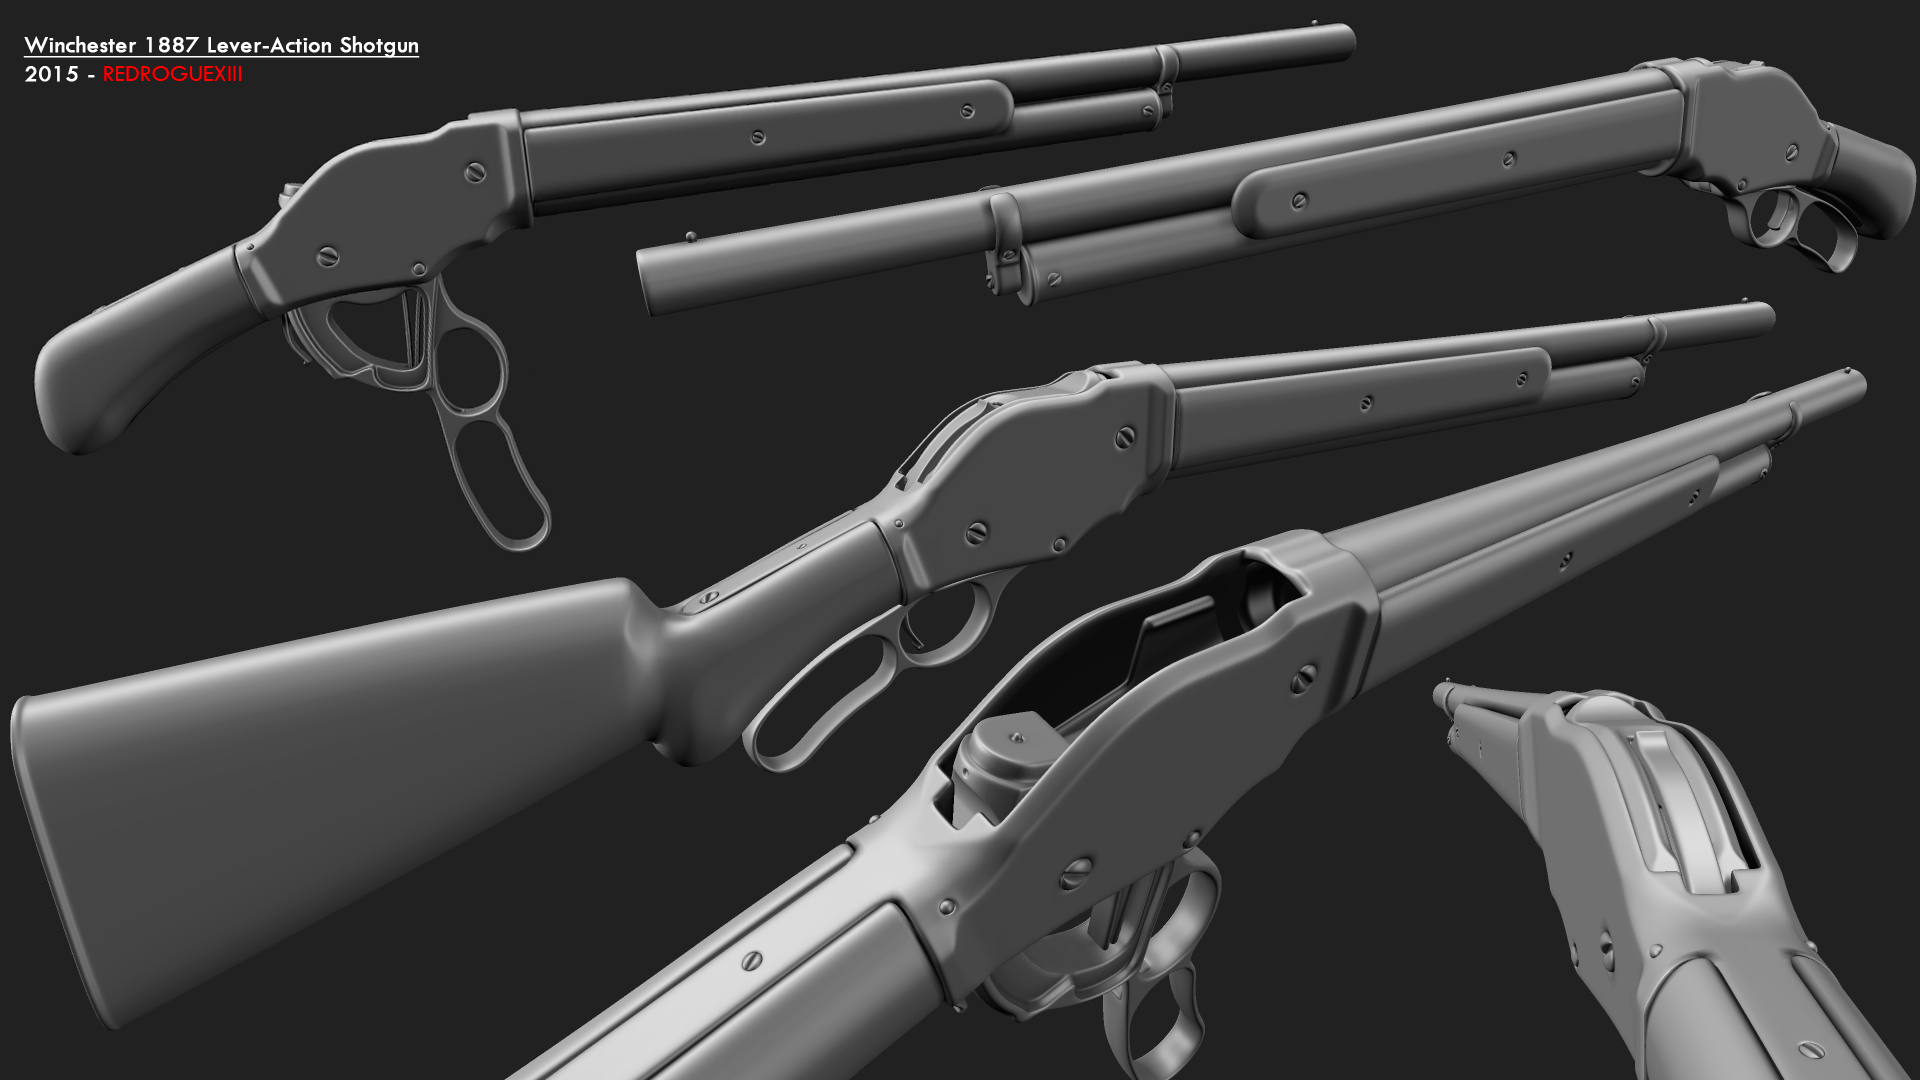 Winchester Model 1887 Lever-Action Shotgun by redroguexiii